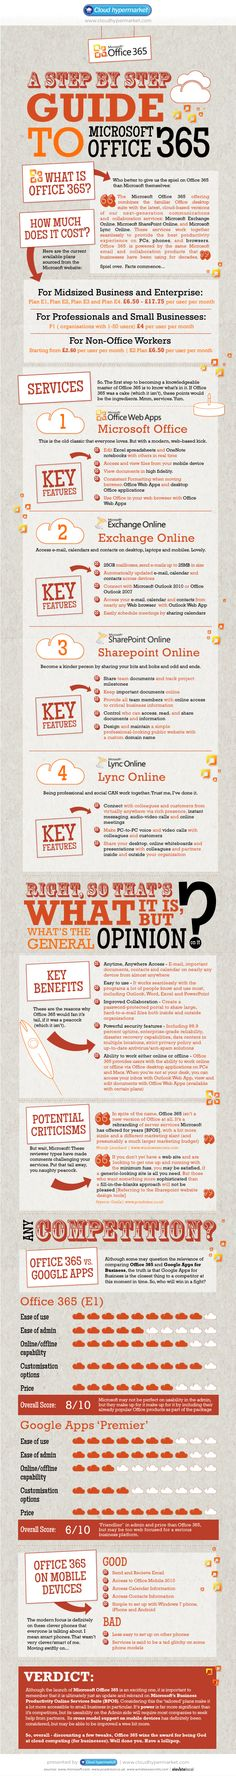 Office 365 Explained - Infographic